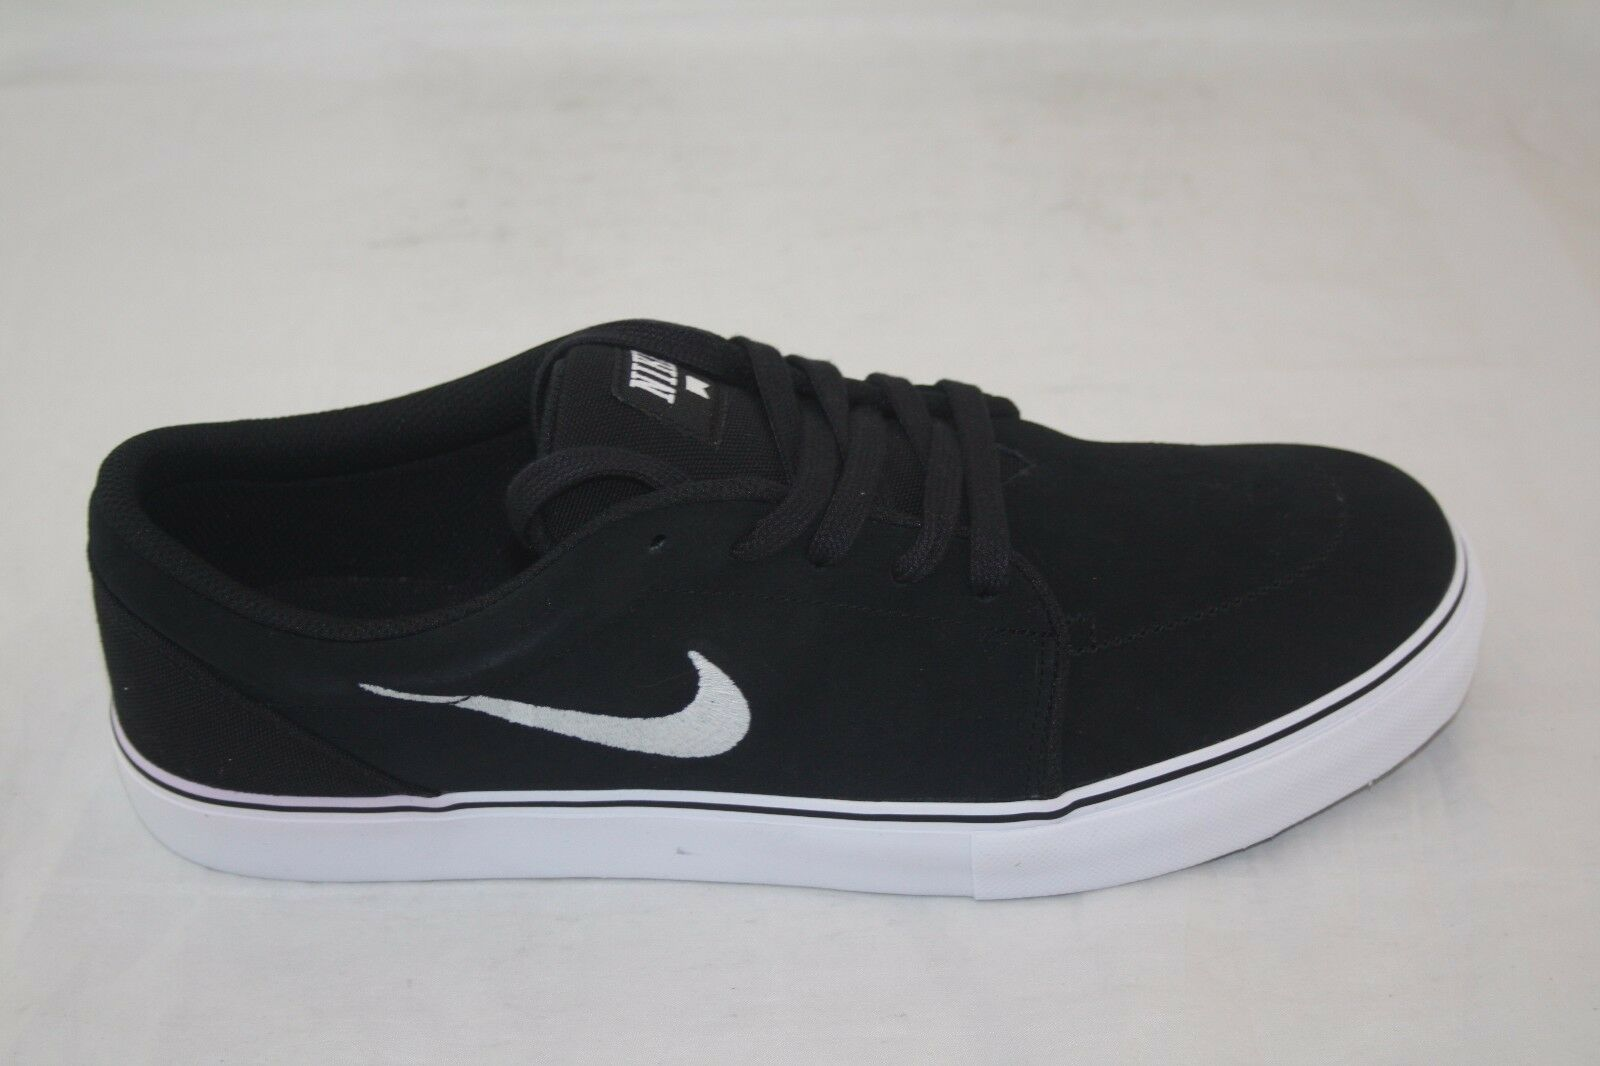 fff7b1bf954bba NEW MEN S NIKE SATIRE CANVAS 536404-010 BLACK WHITE msrp  68.00 9ecdd9. Nike  Air Max Invigor Print Men s Sz 15 Grey Black Athletic Sneaker Shoes ...